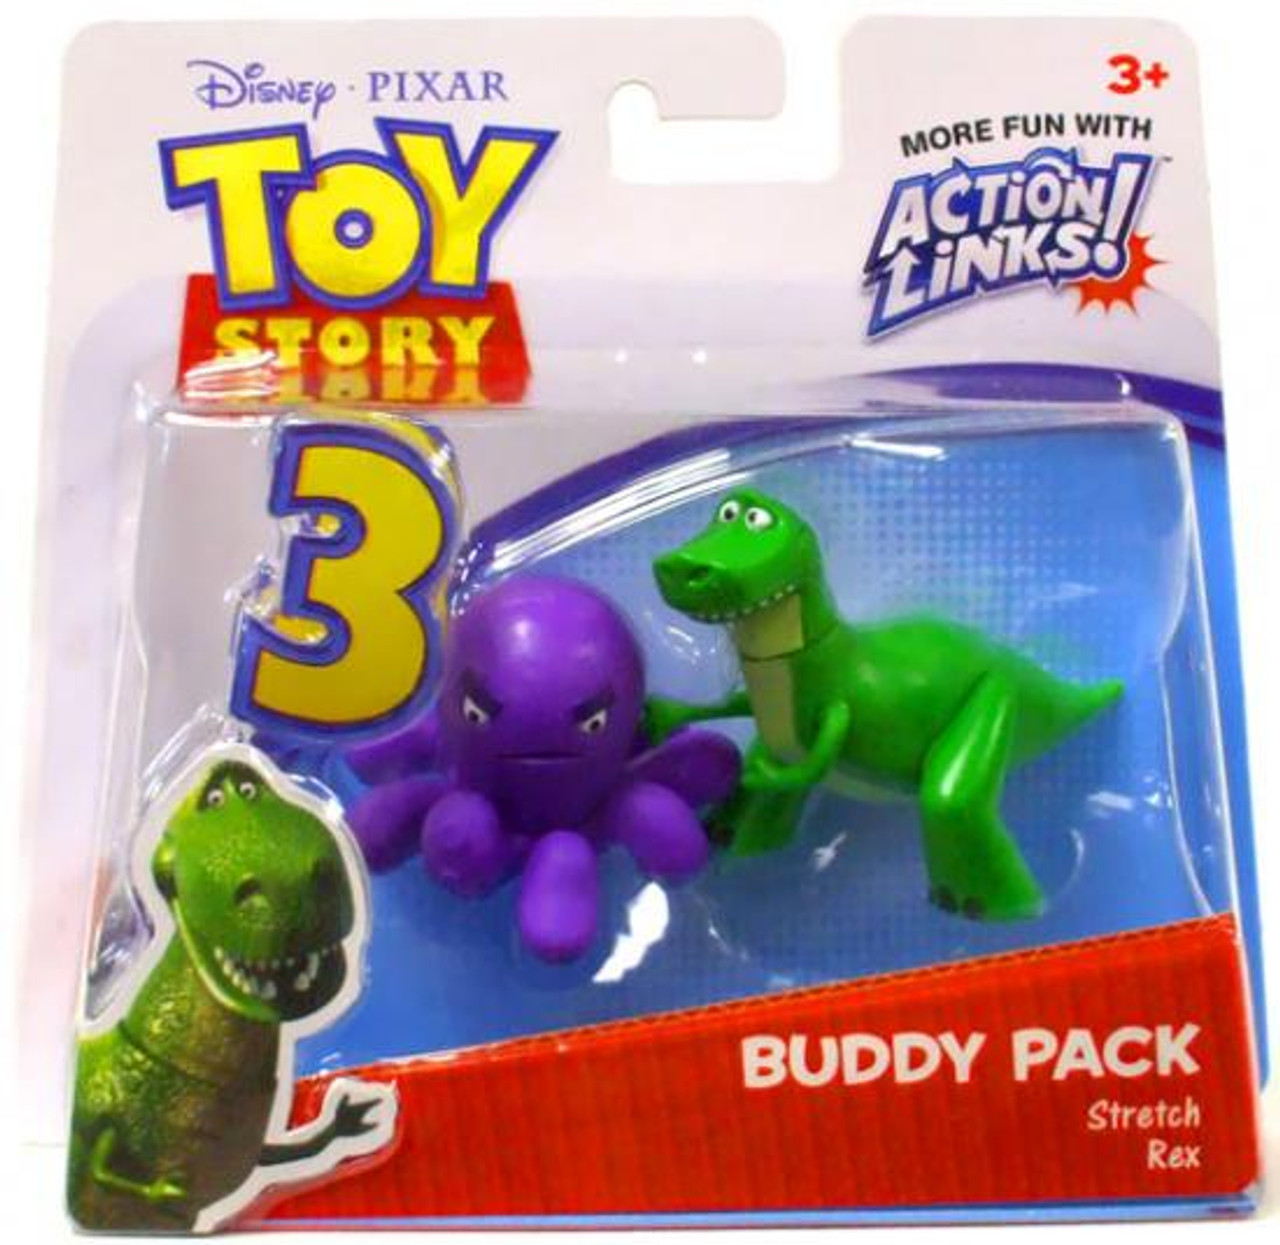 Toy Story 3 Action Links Buddy Pack Stretch & Rex Mini Figure 2-Pack